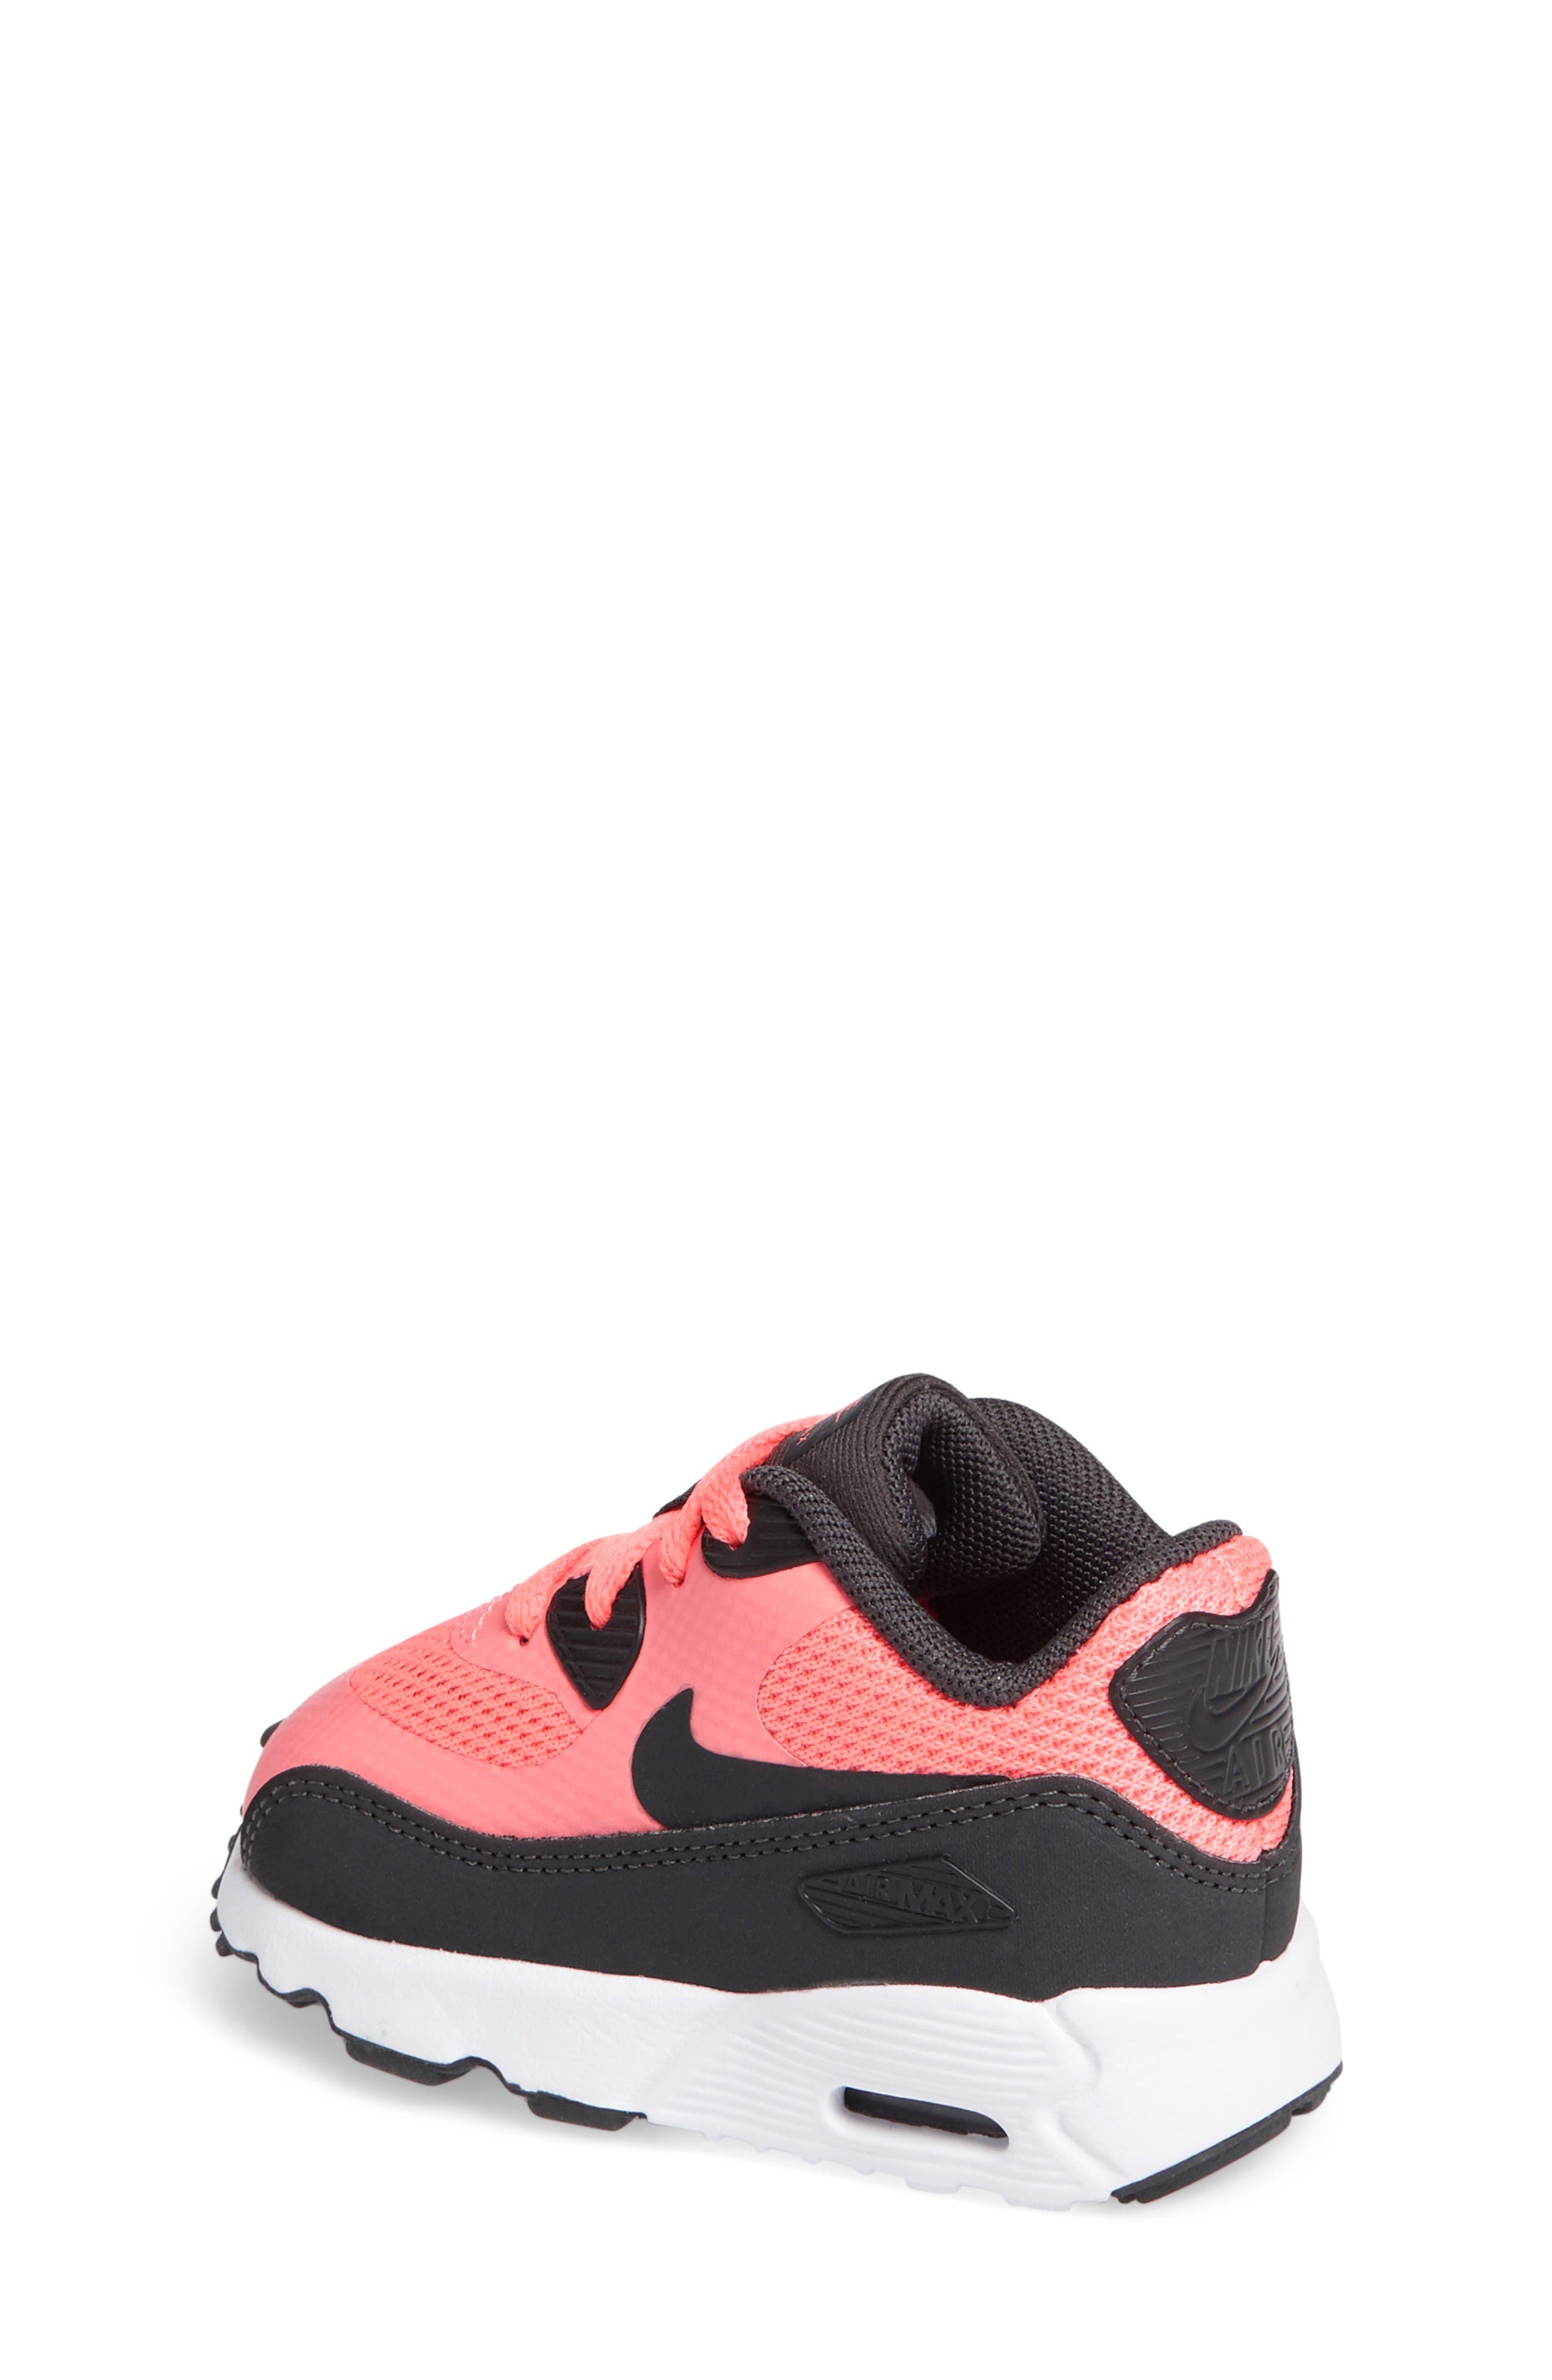 Air Max 90 Ultra 2.0 Sneaker,                             Alternate thumbnail 2, color,                             Lava Glow/ Anthracite/ White